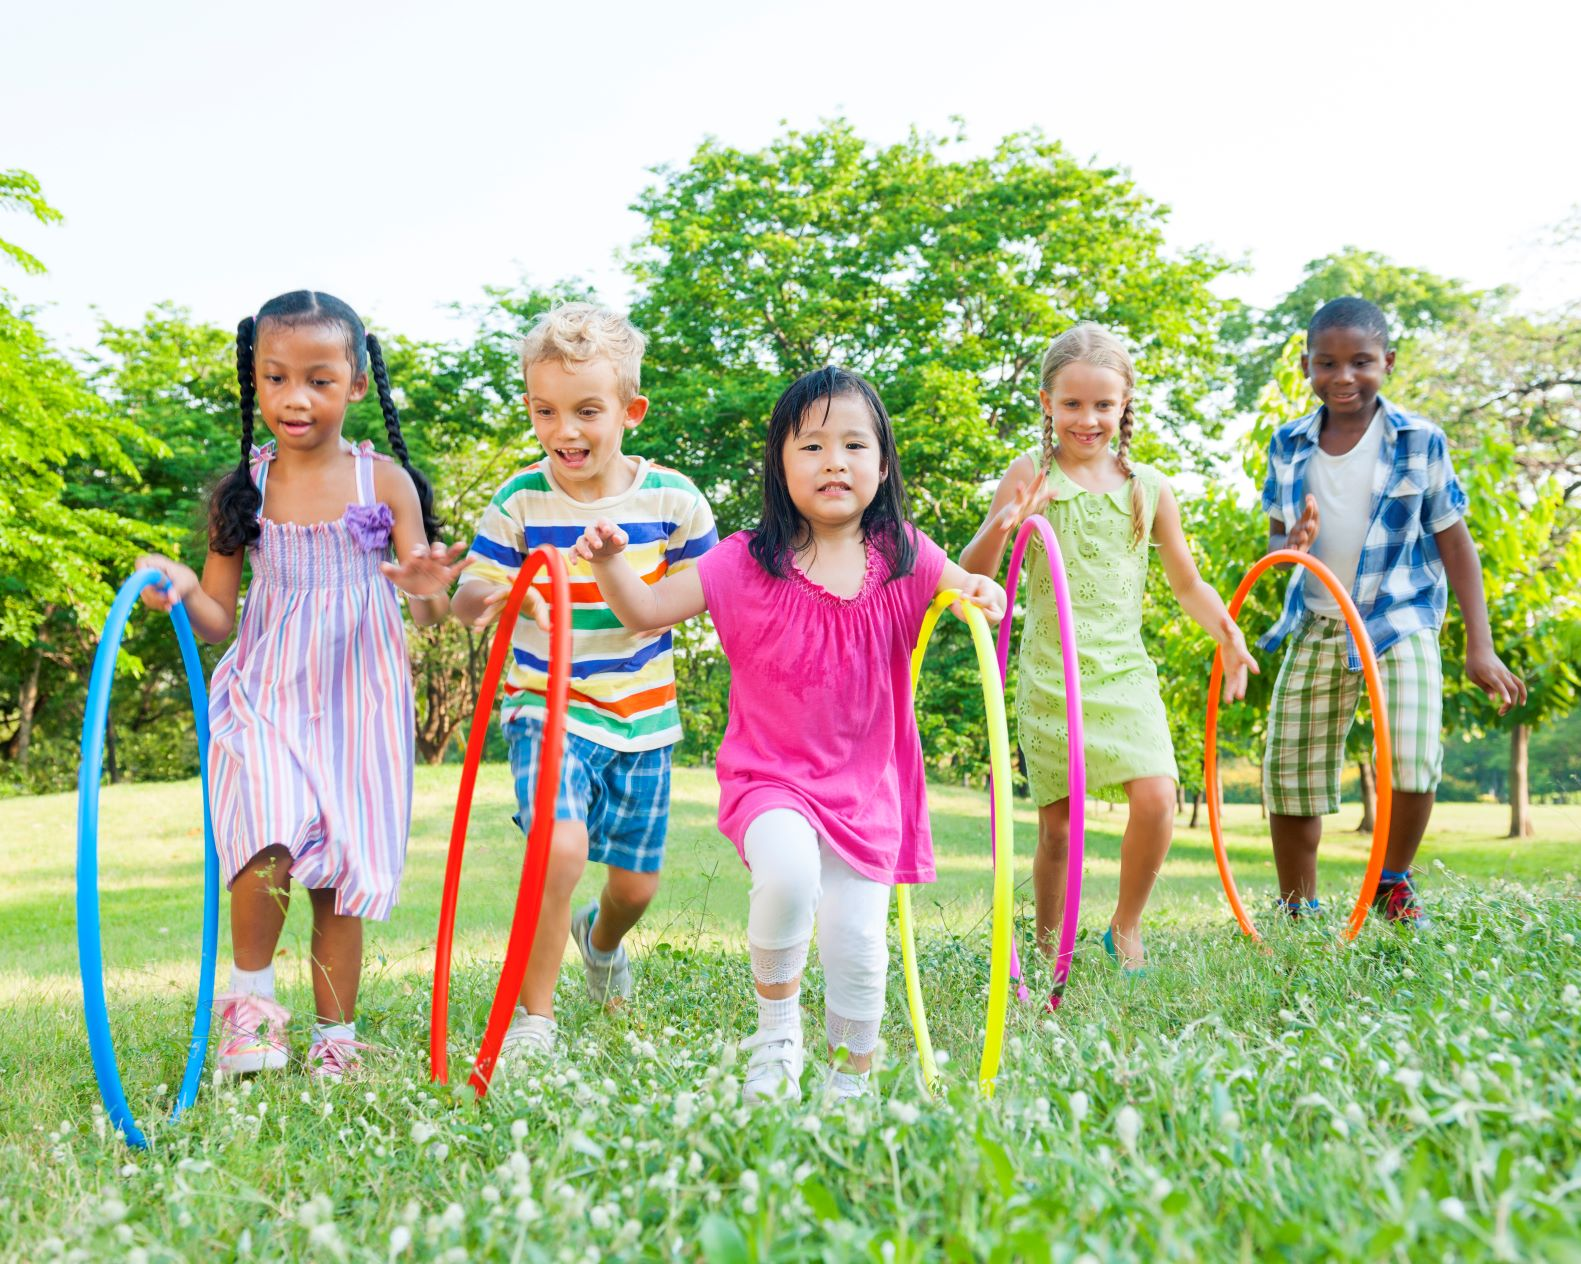 cute-diverse-kids-playing-park